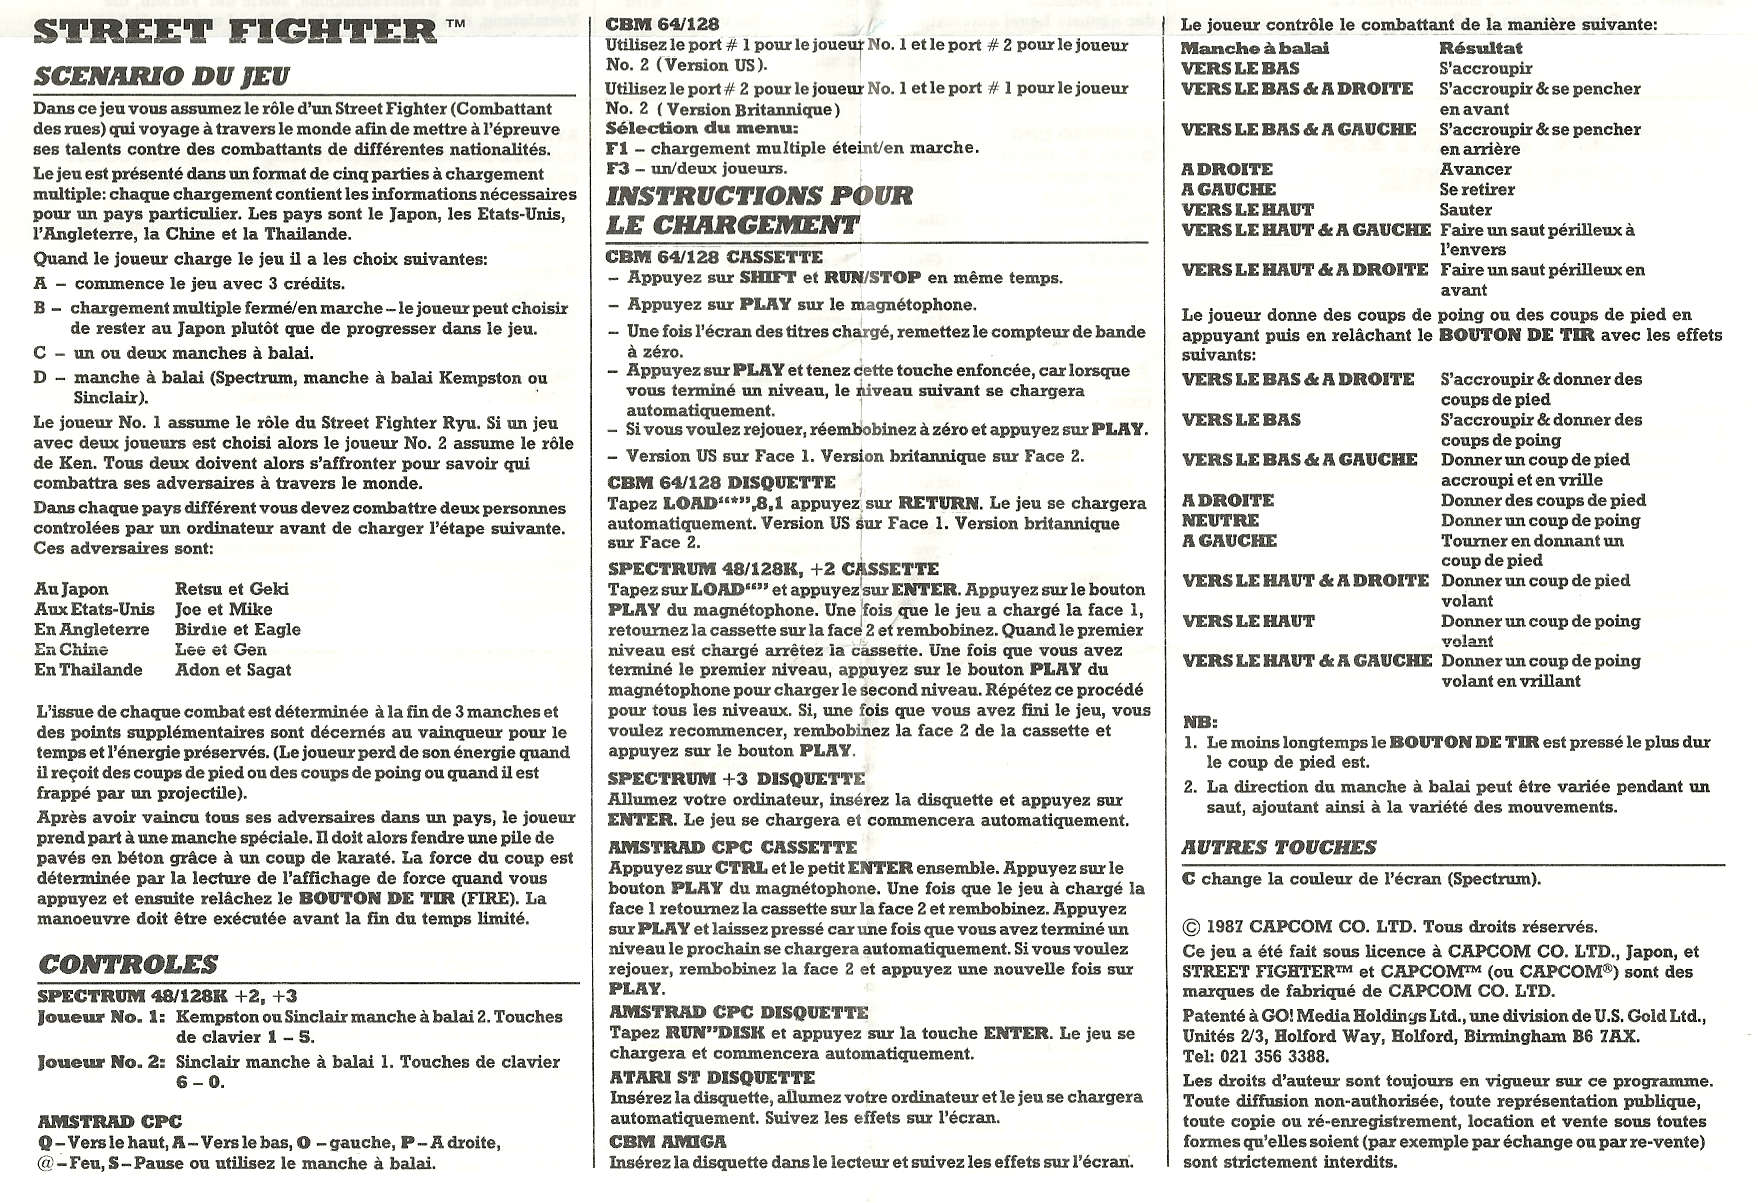 French manual